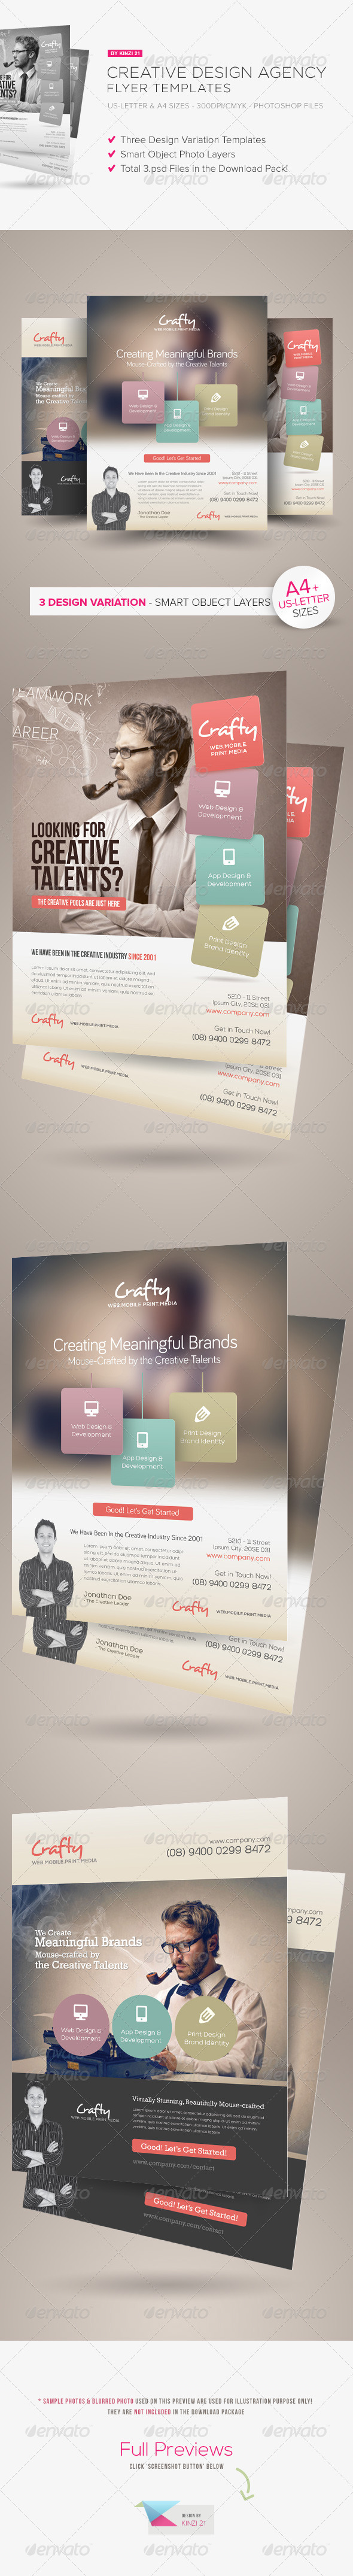 Creative Design Agency Flyers - Corporate Flyers